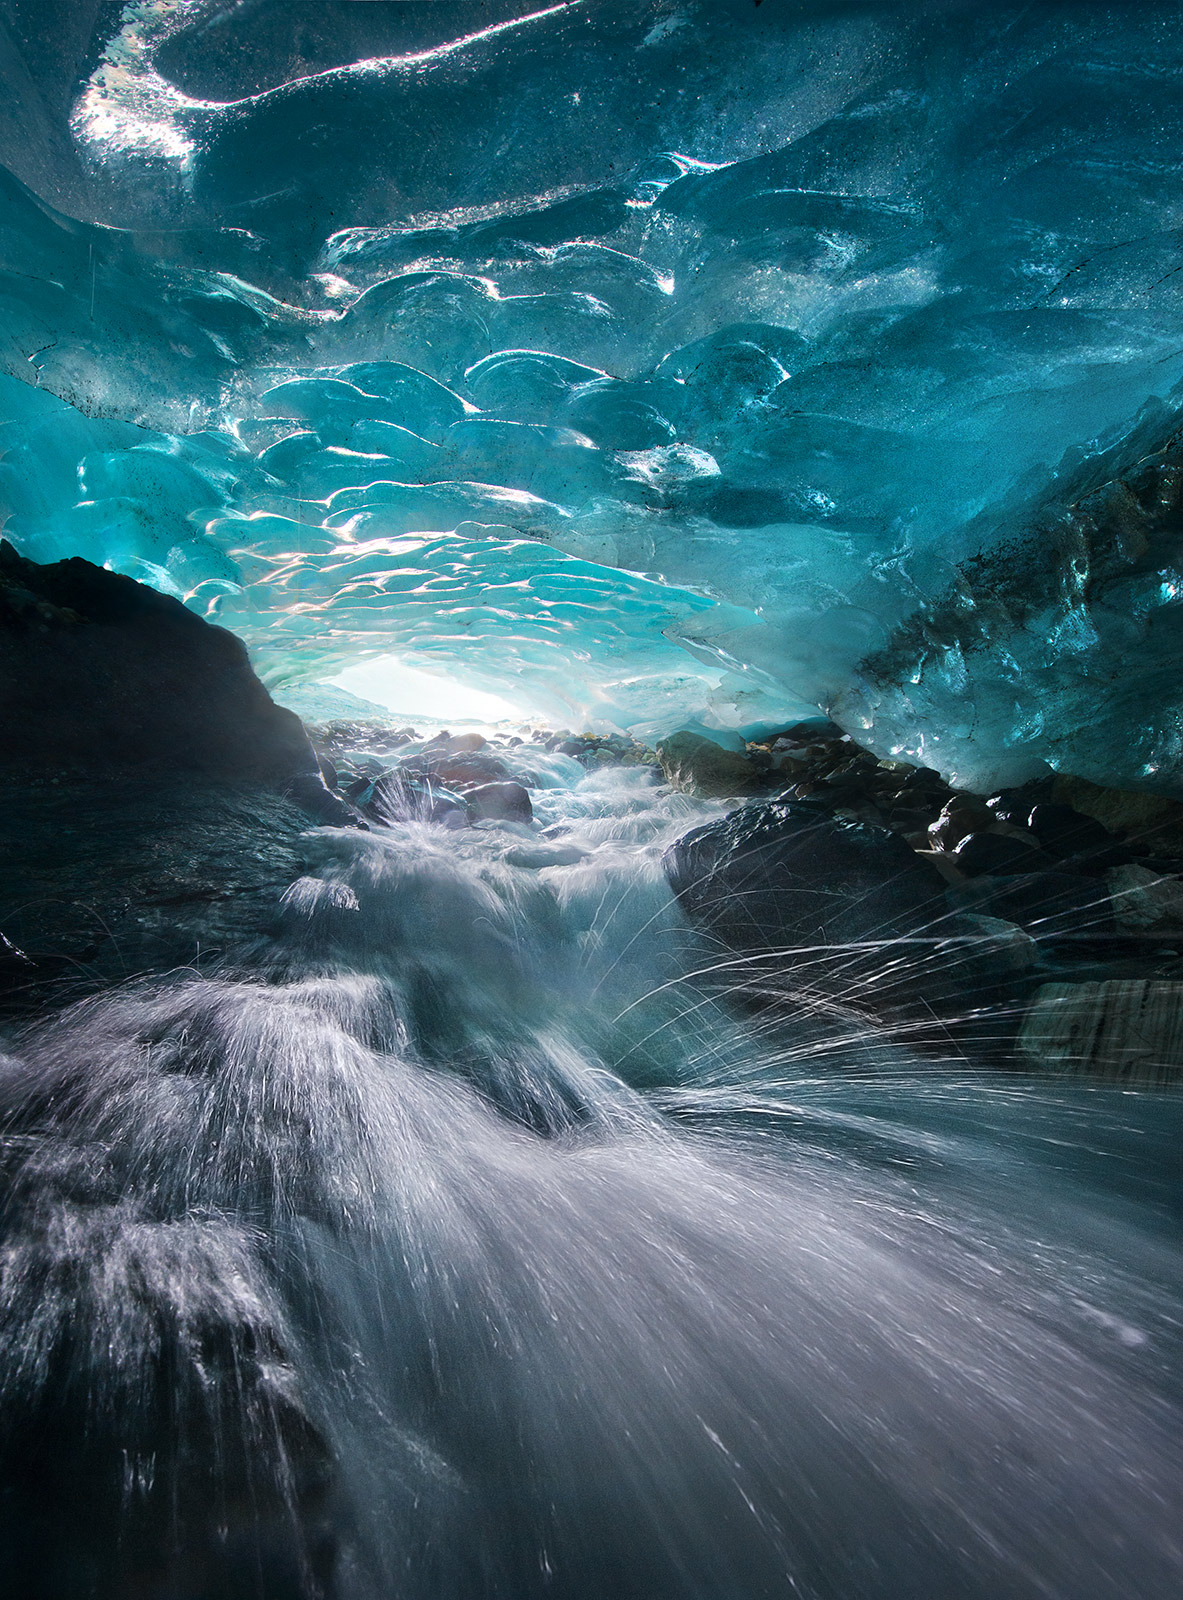 cold, wet, alaska, glacial, blue-ice, blue, ice, cave, boundary range, splash, photo